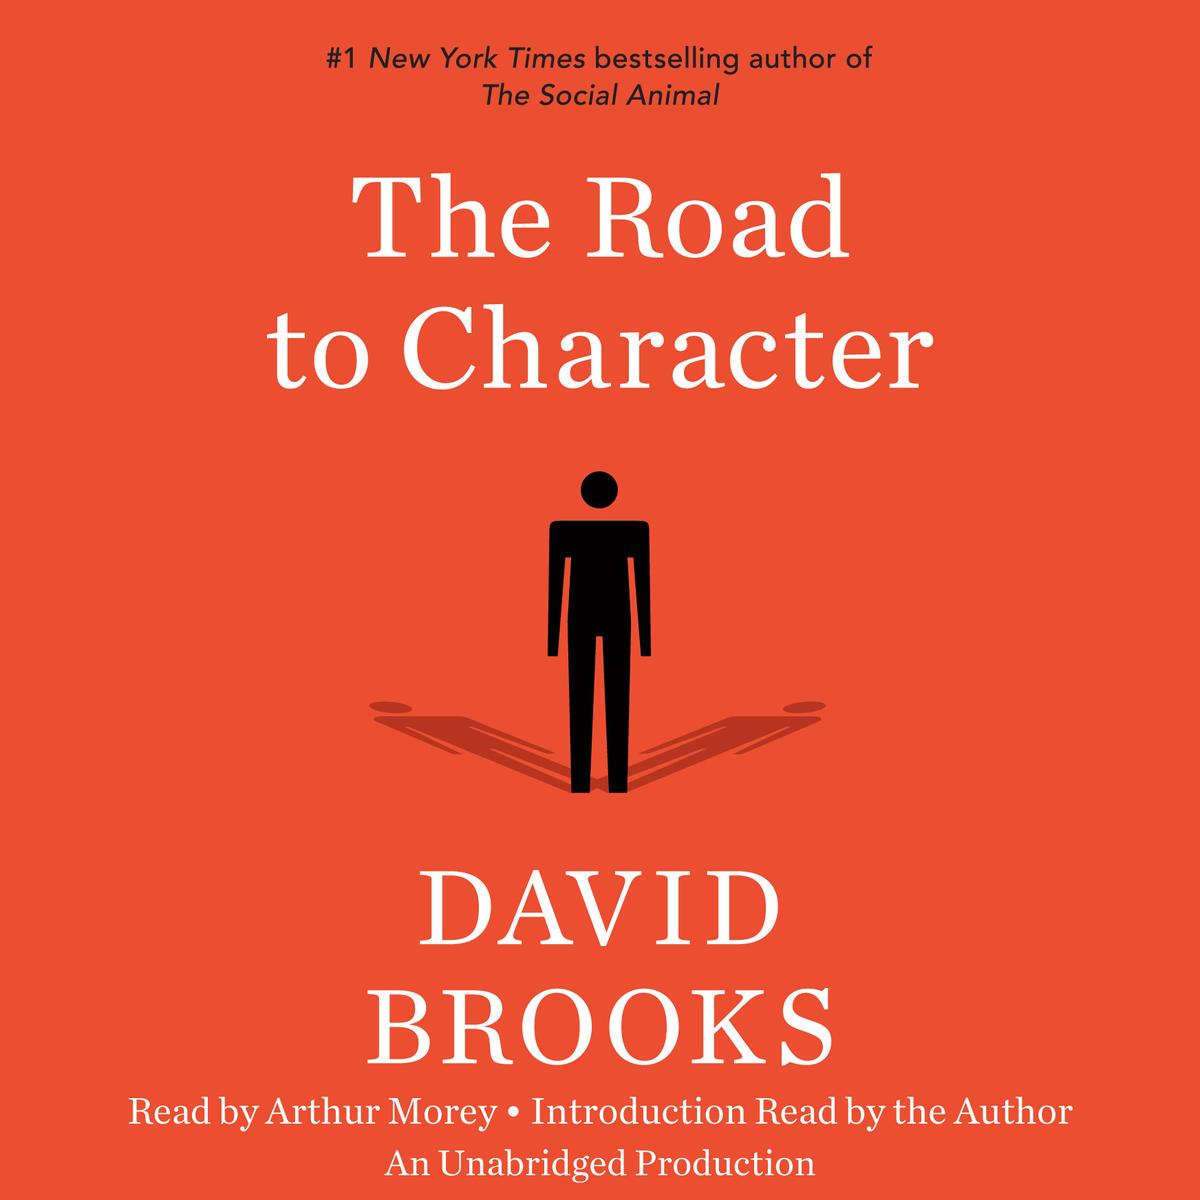 The Road to Character - Audiobook